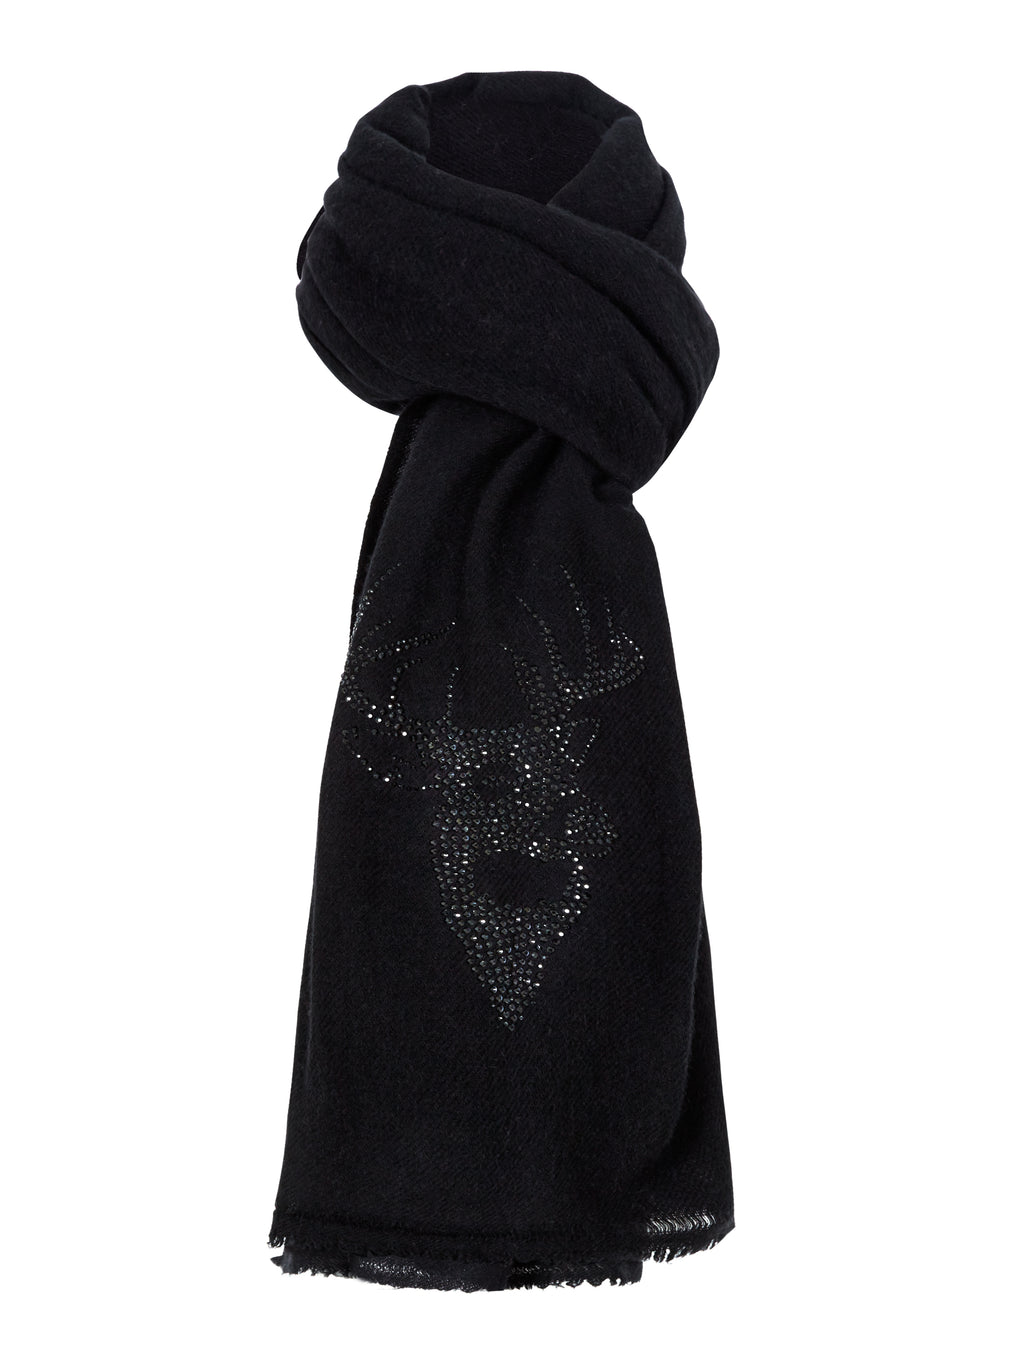 Woven Winter Cashmere Scarf STAG  (black)